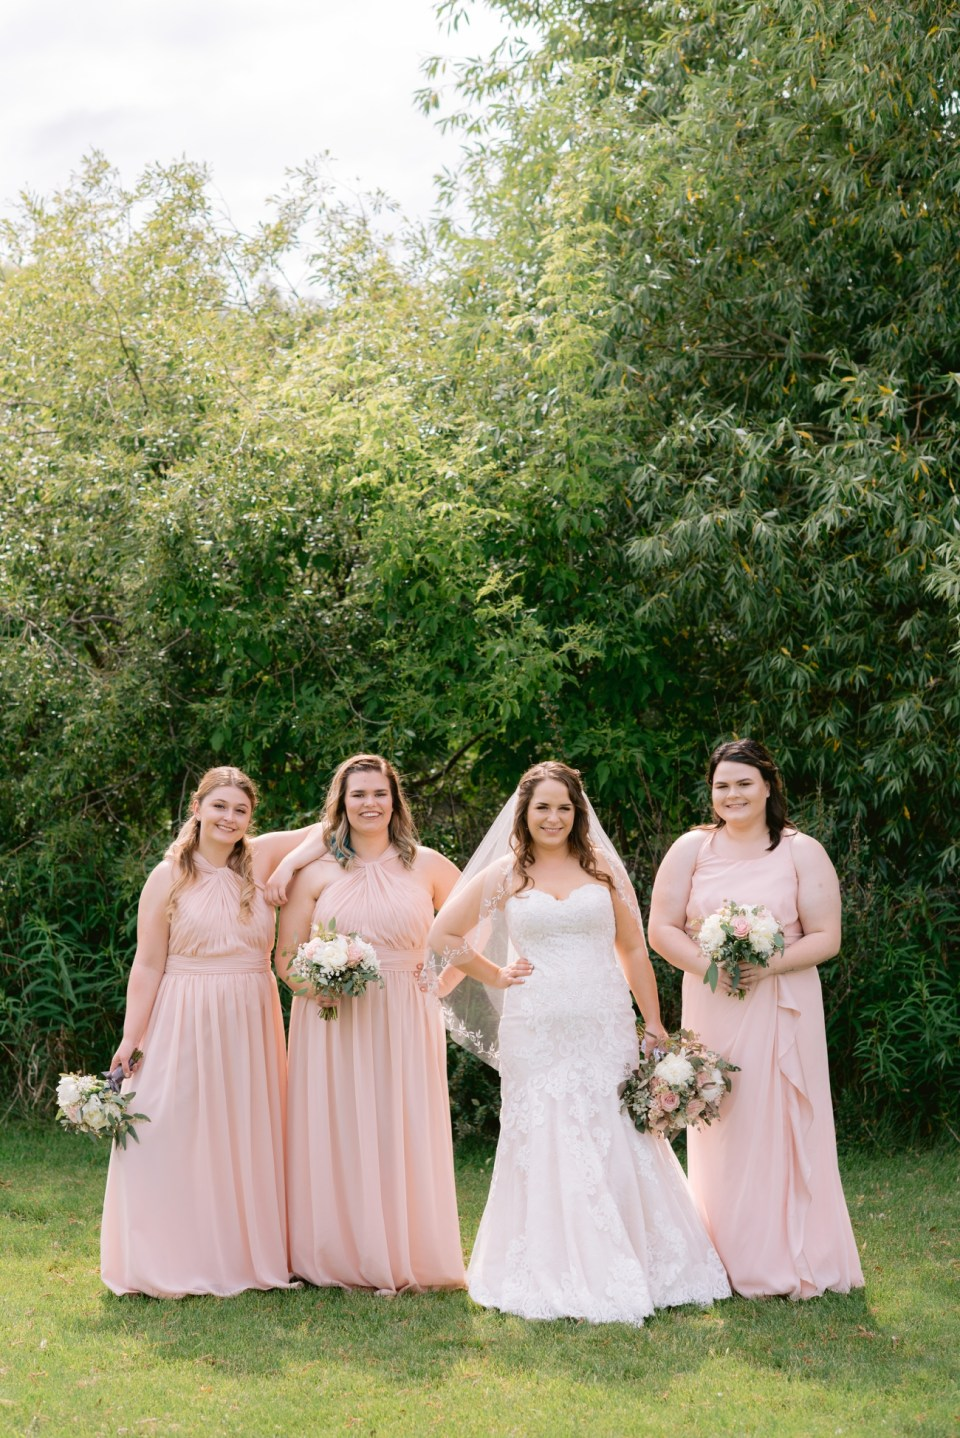 A blush and grey intimate wedding | The Big Red Barn | Lacombe, AB